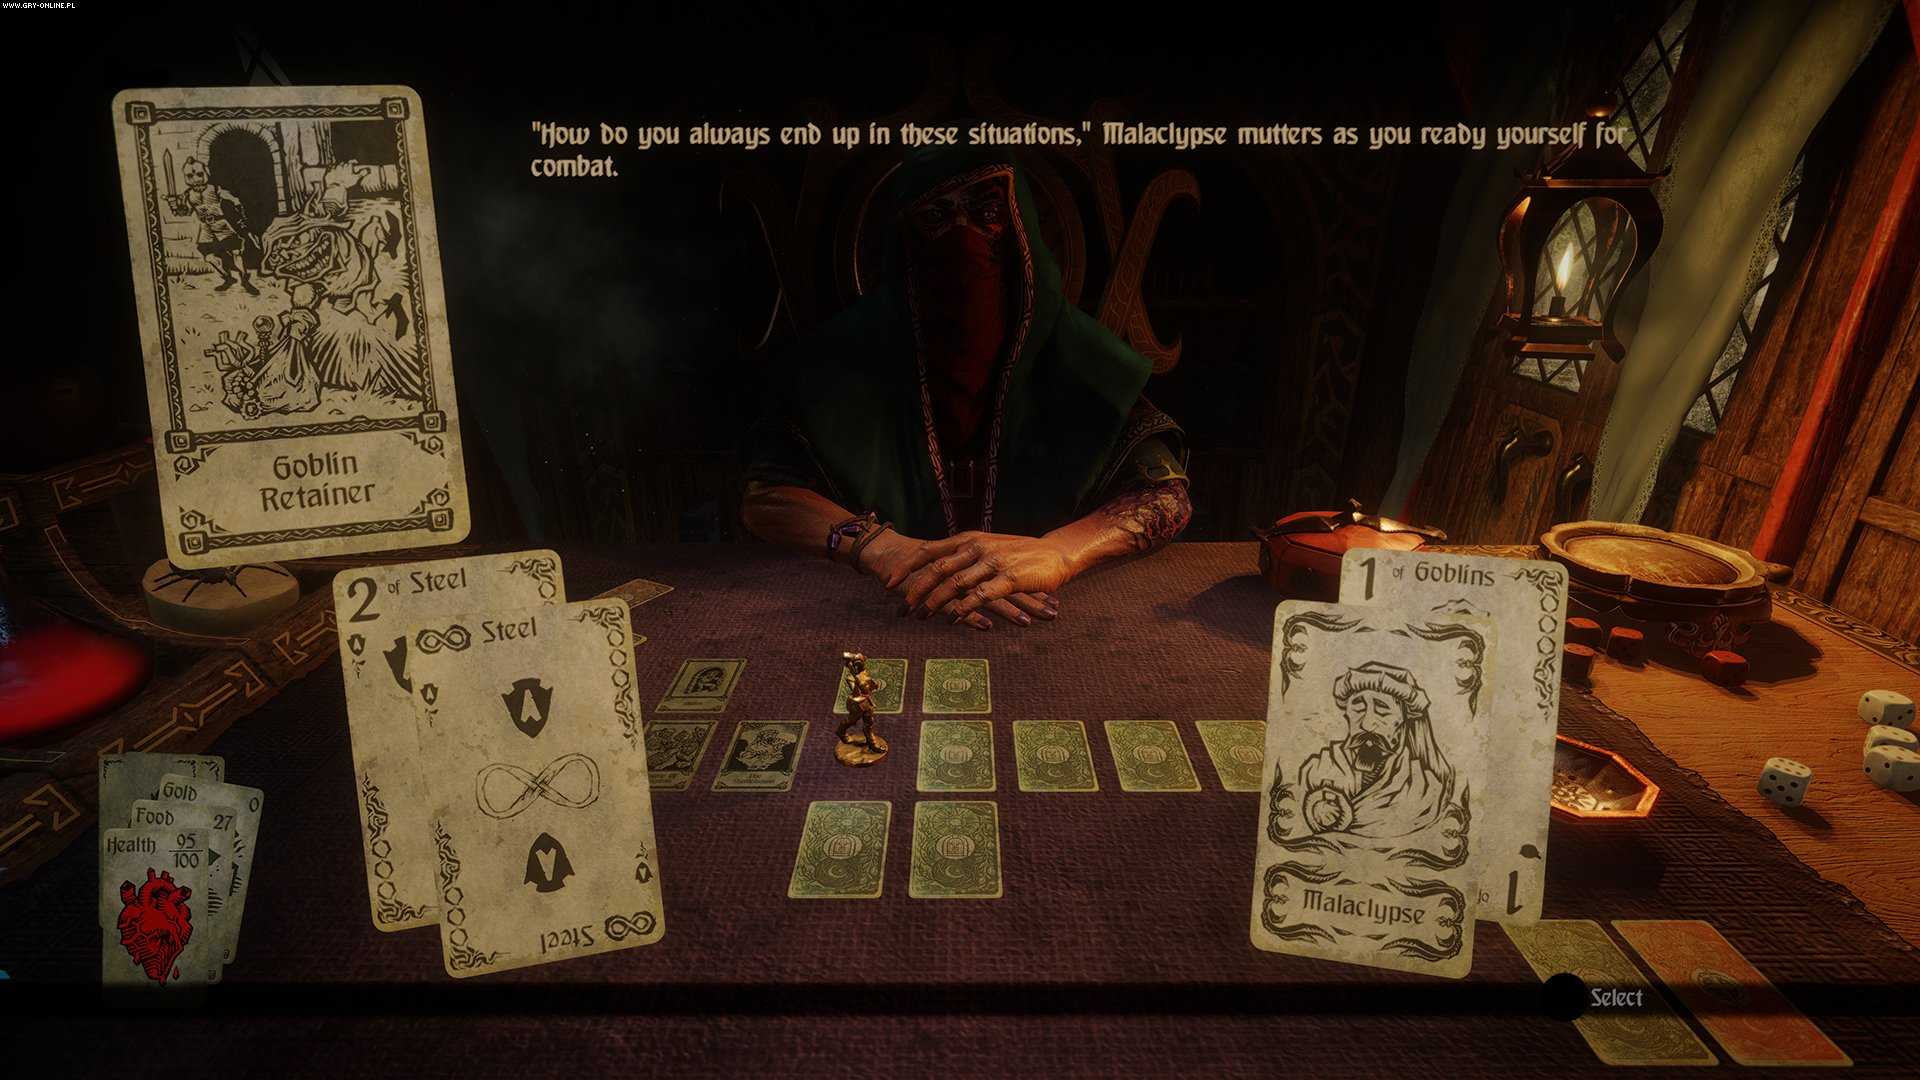 Hand of Fate 2 PC, PS4, XONE, Switch Gry Screen 29/33, Defiant Development